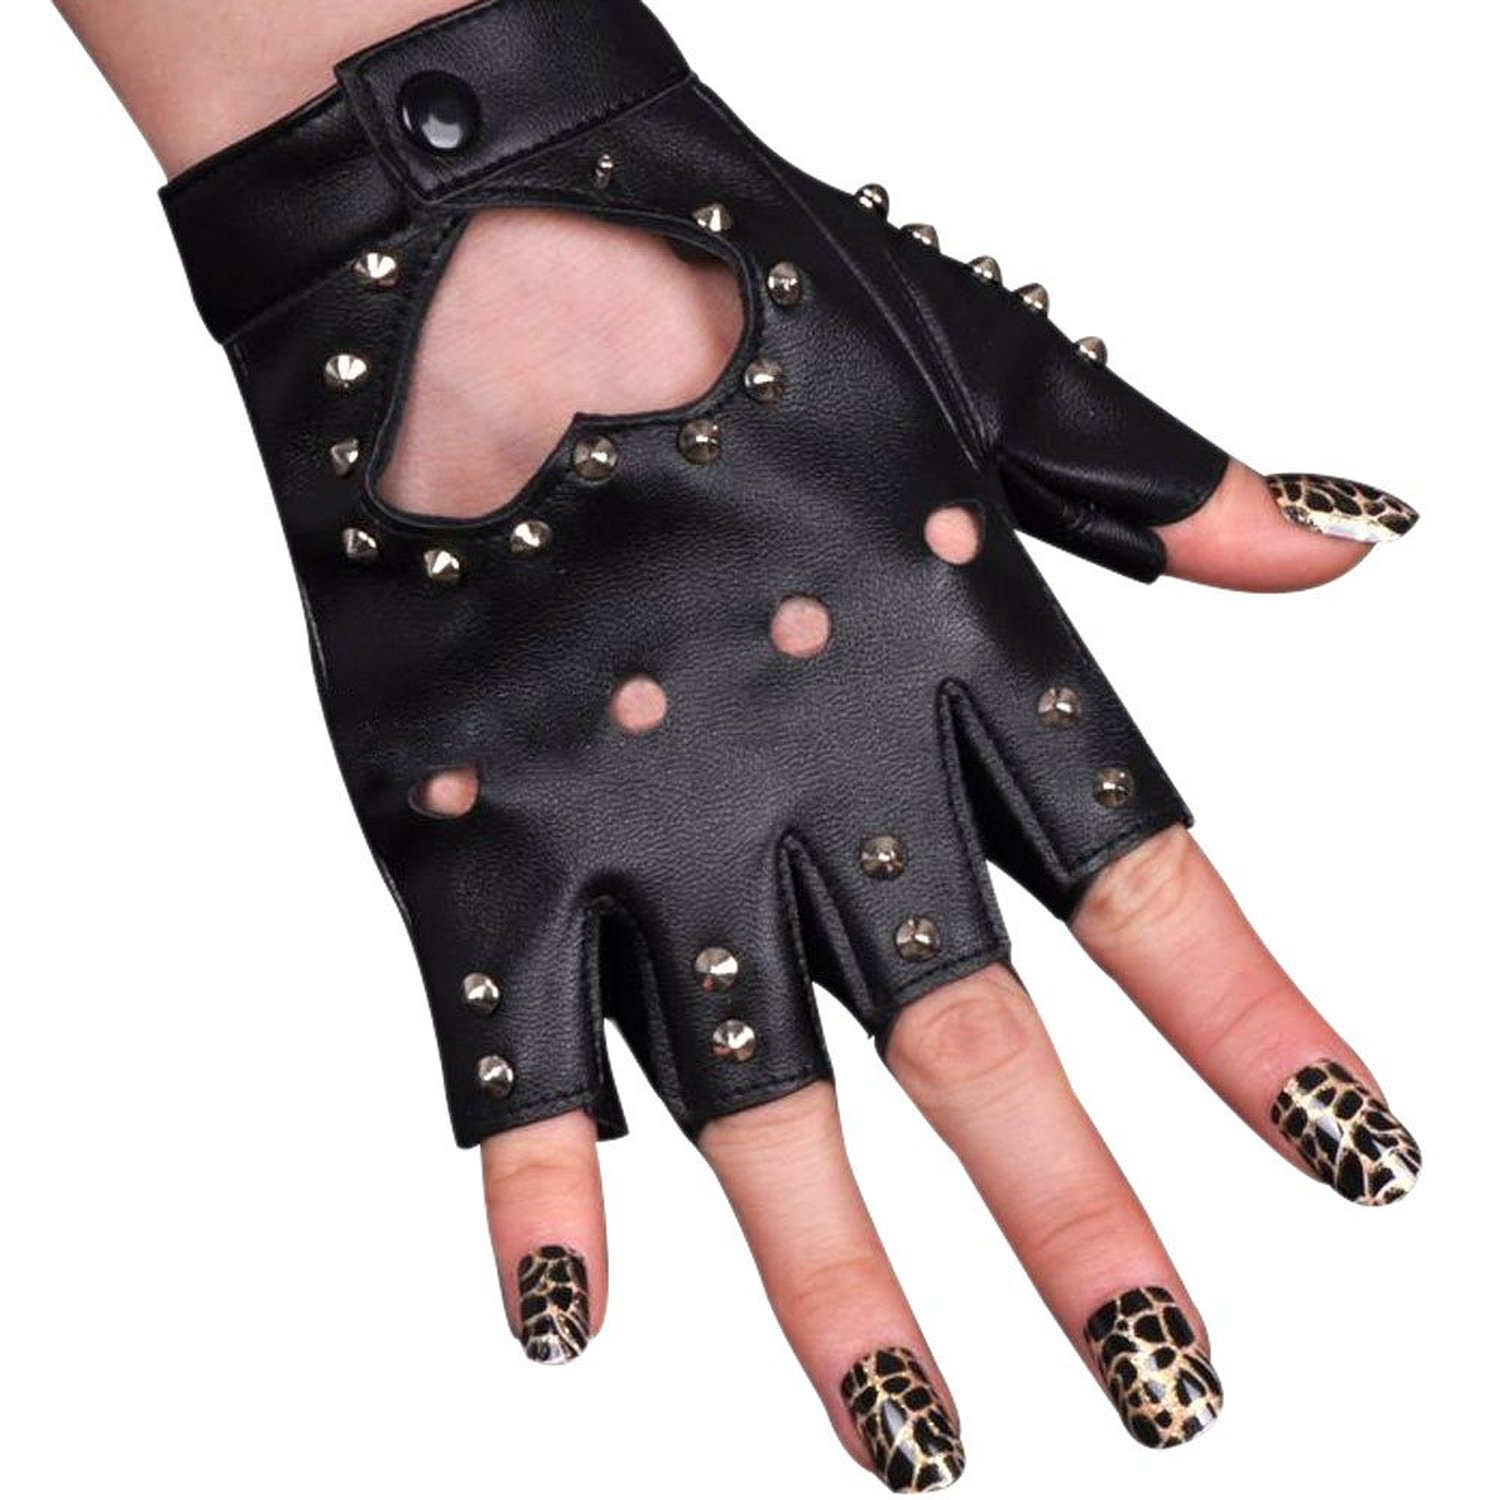 Fingerless gloves amazon - Women Pu Leather Motorcycle Bike Car Fingerless Performances Glove Black1 At Amazon Women S Clothing Store